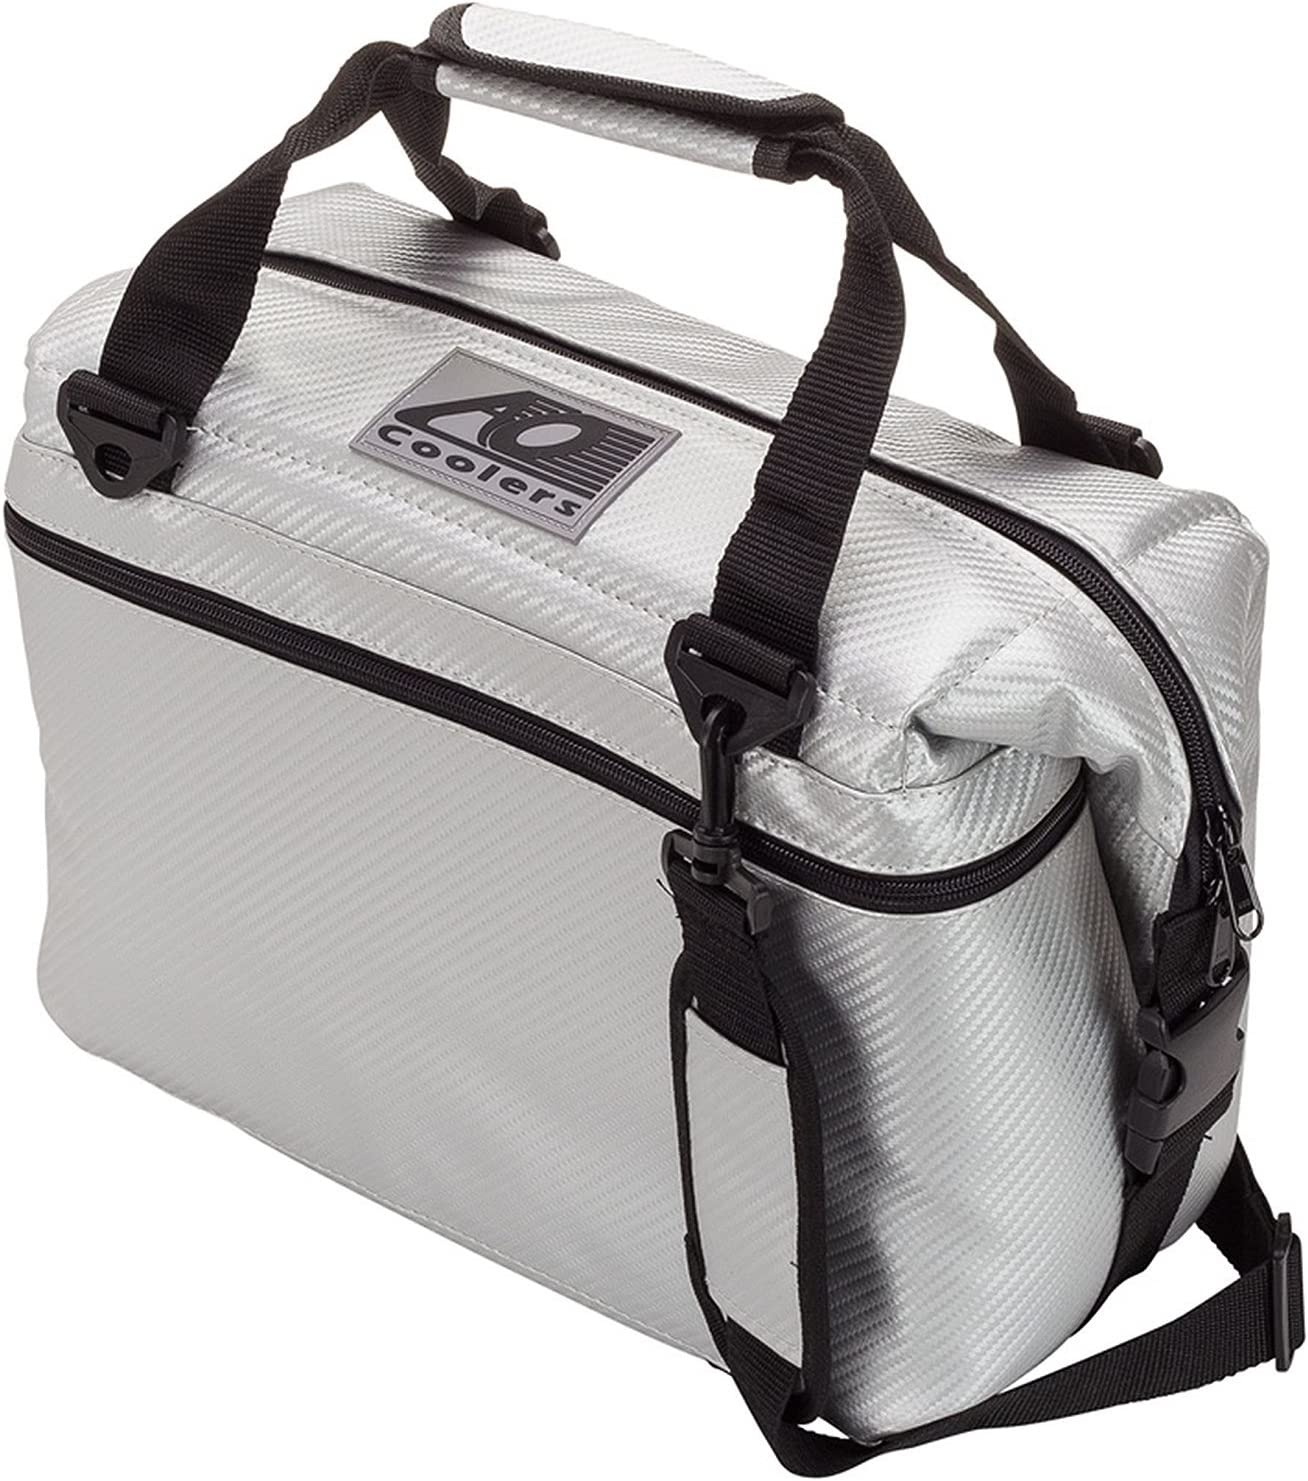 AO Coolers Carbon Soft Cooler with High-Density Insulation